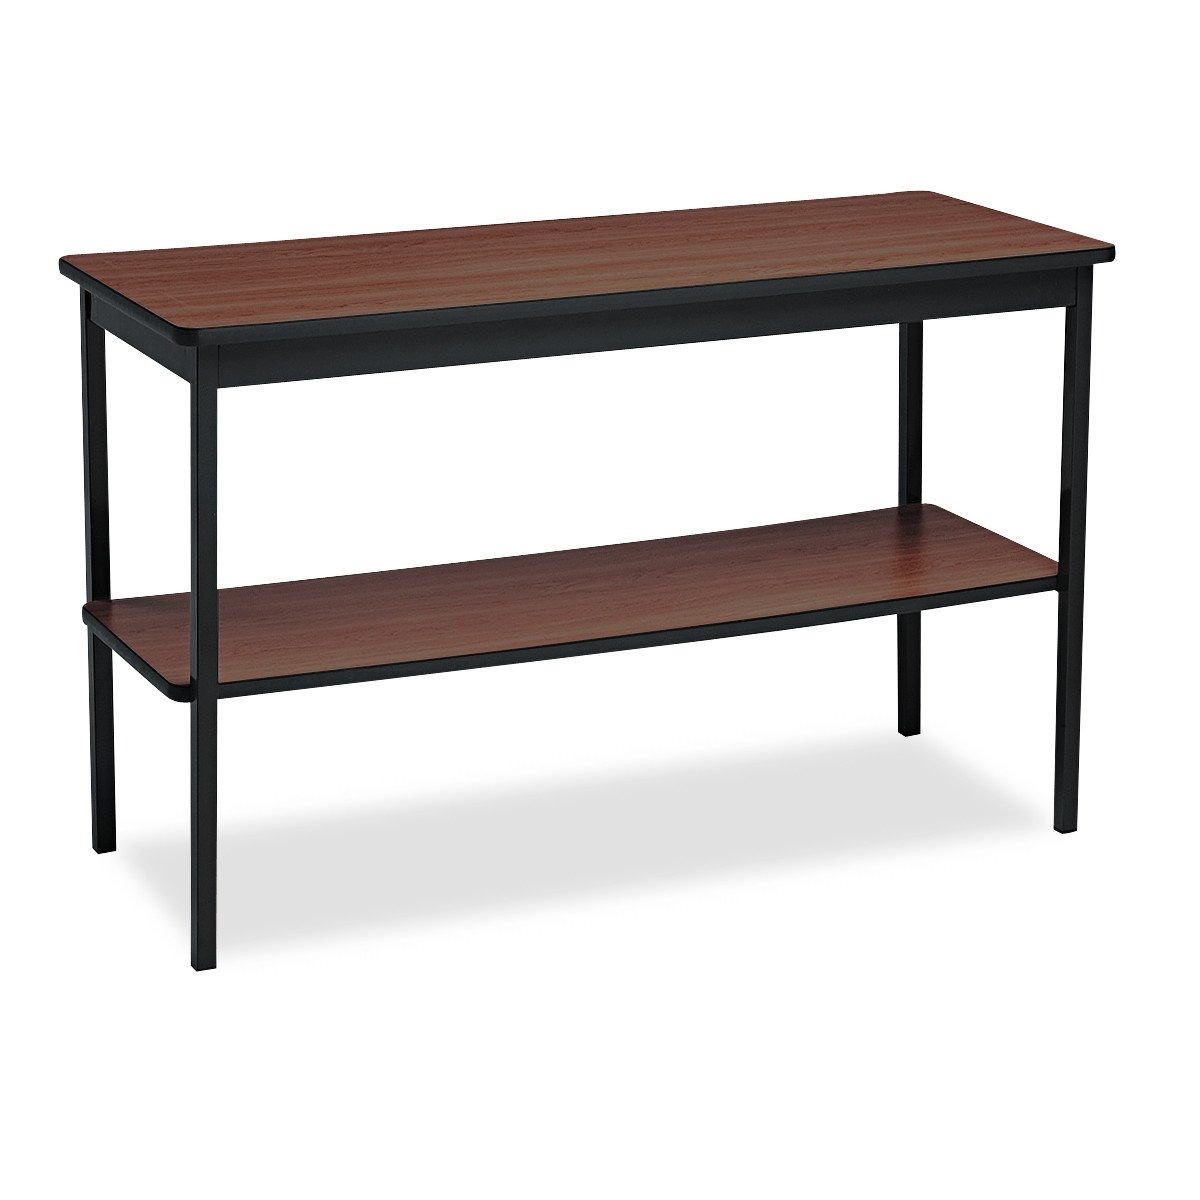 Barricks UTS1848WA Utility Table with Bottom Shelf, Rectangular, 48w x 18d x 30h, Walnut/Black